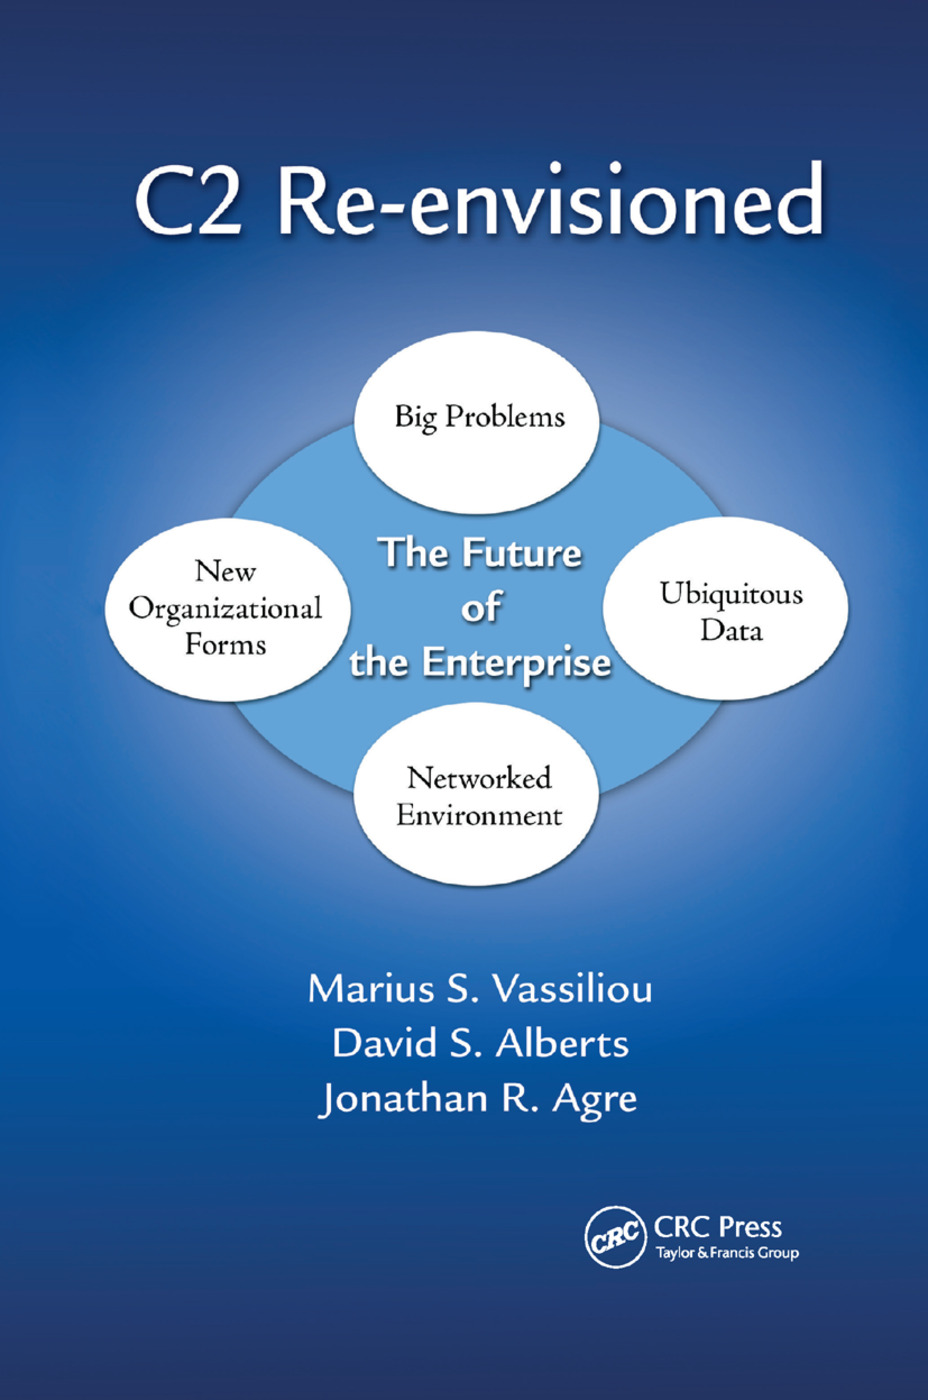 C2 Re-envisioned: The Future of the Enterprise book cover